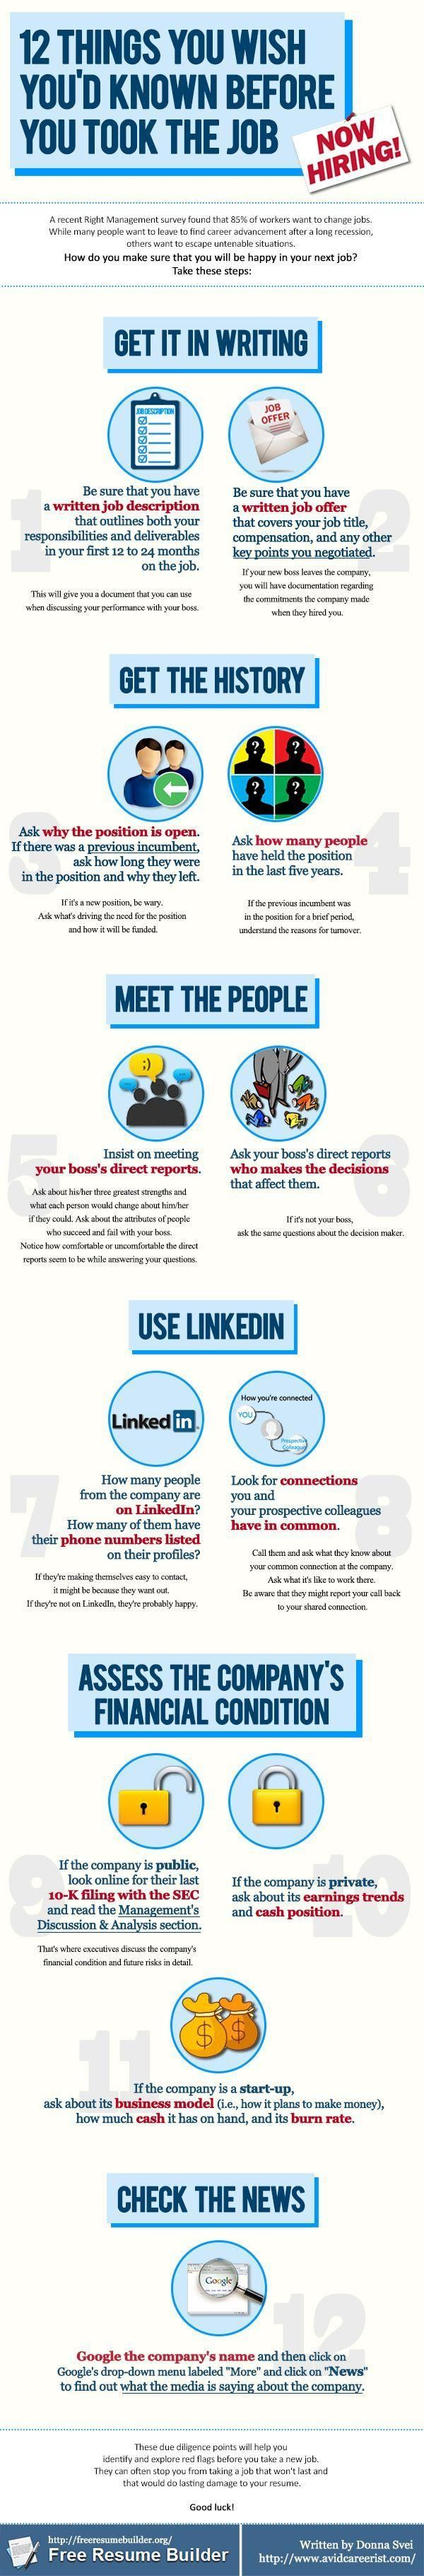 top ideas about interviewing in person interview infographic a good checklist to run through before you take a new job and when